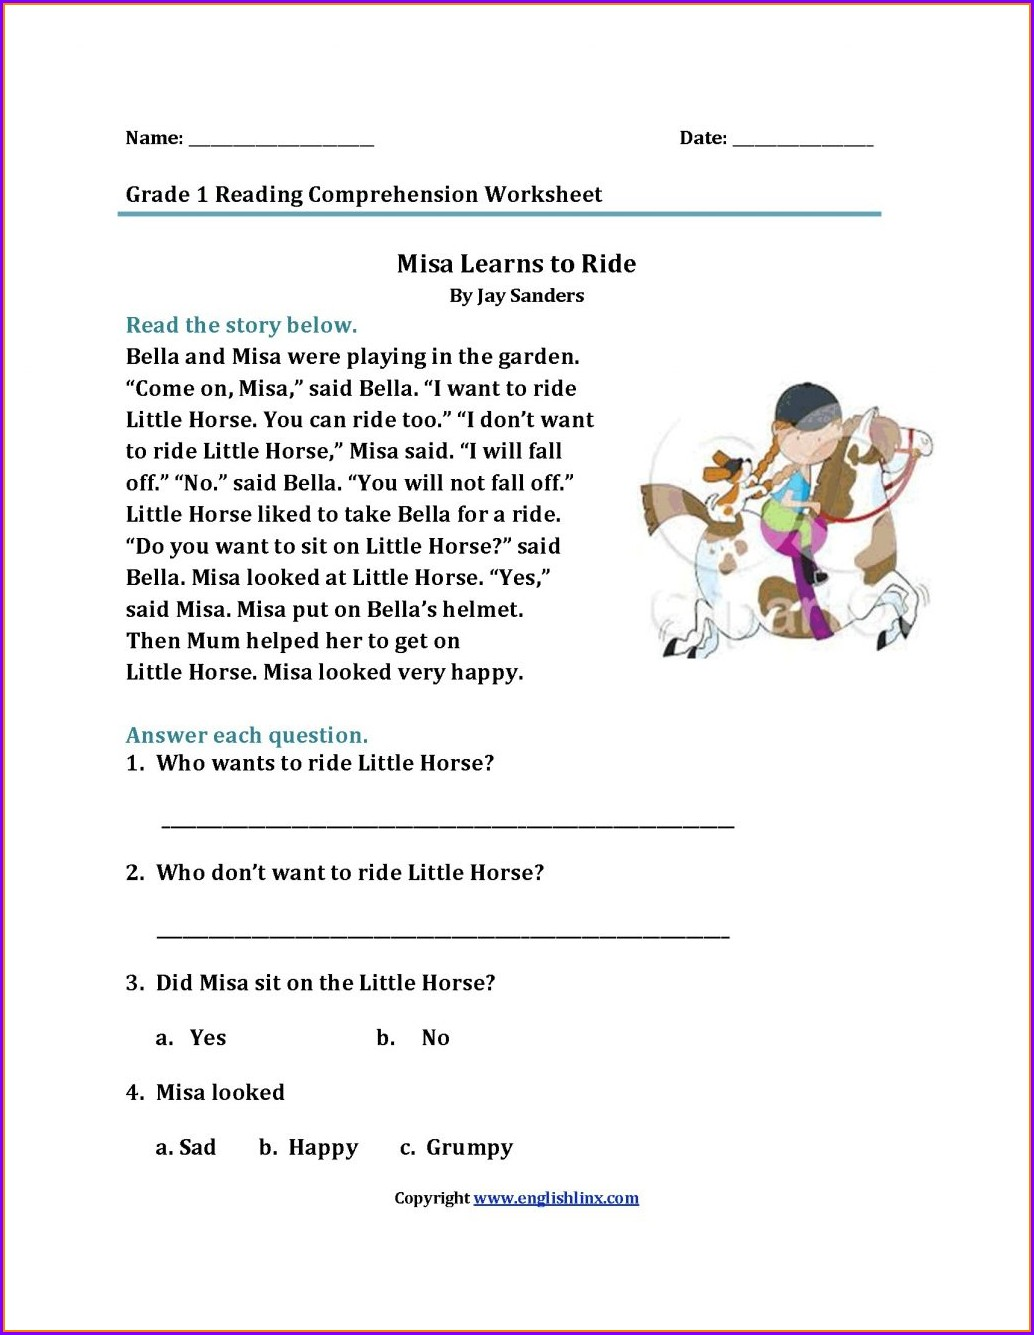 Printable Reading Comprehension Test For Grade 1